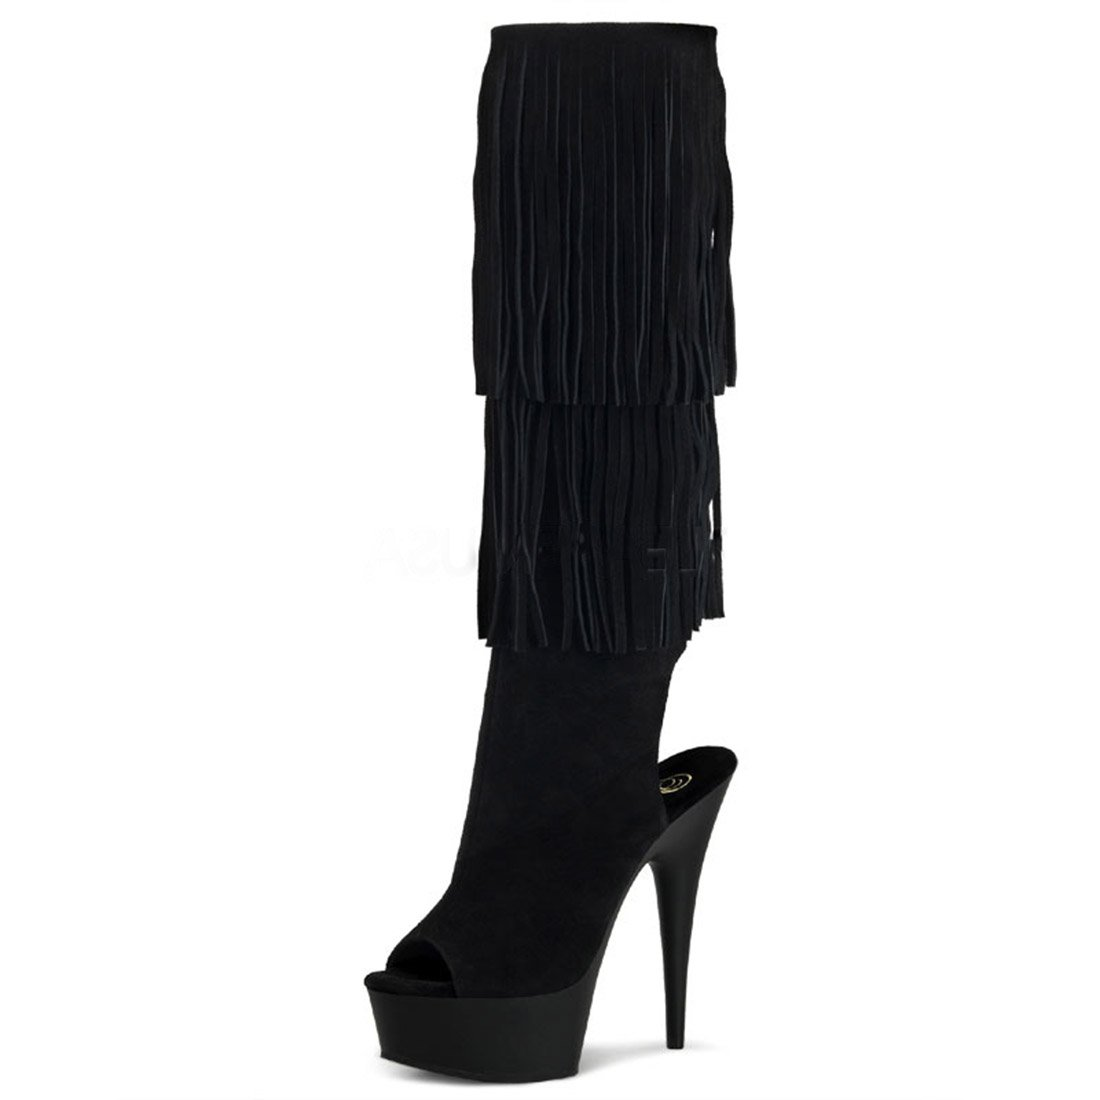 Summitfashions Fringed Knee High Black Suede Boots with Open Back Peep Toe and 6 Inch Heels B00F99RVAE 9 B(M) US